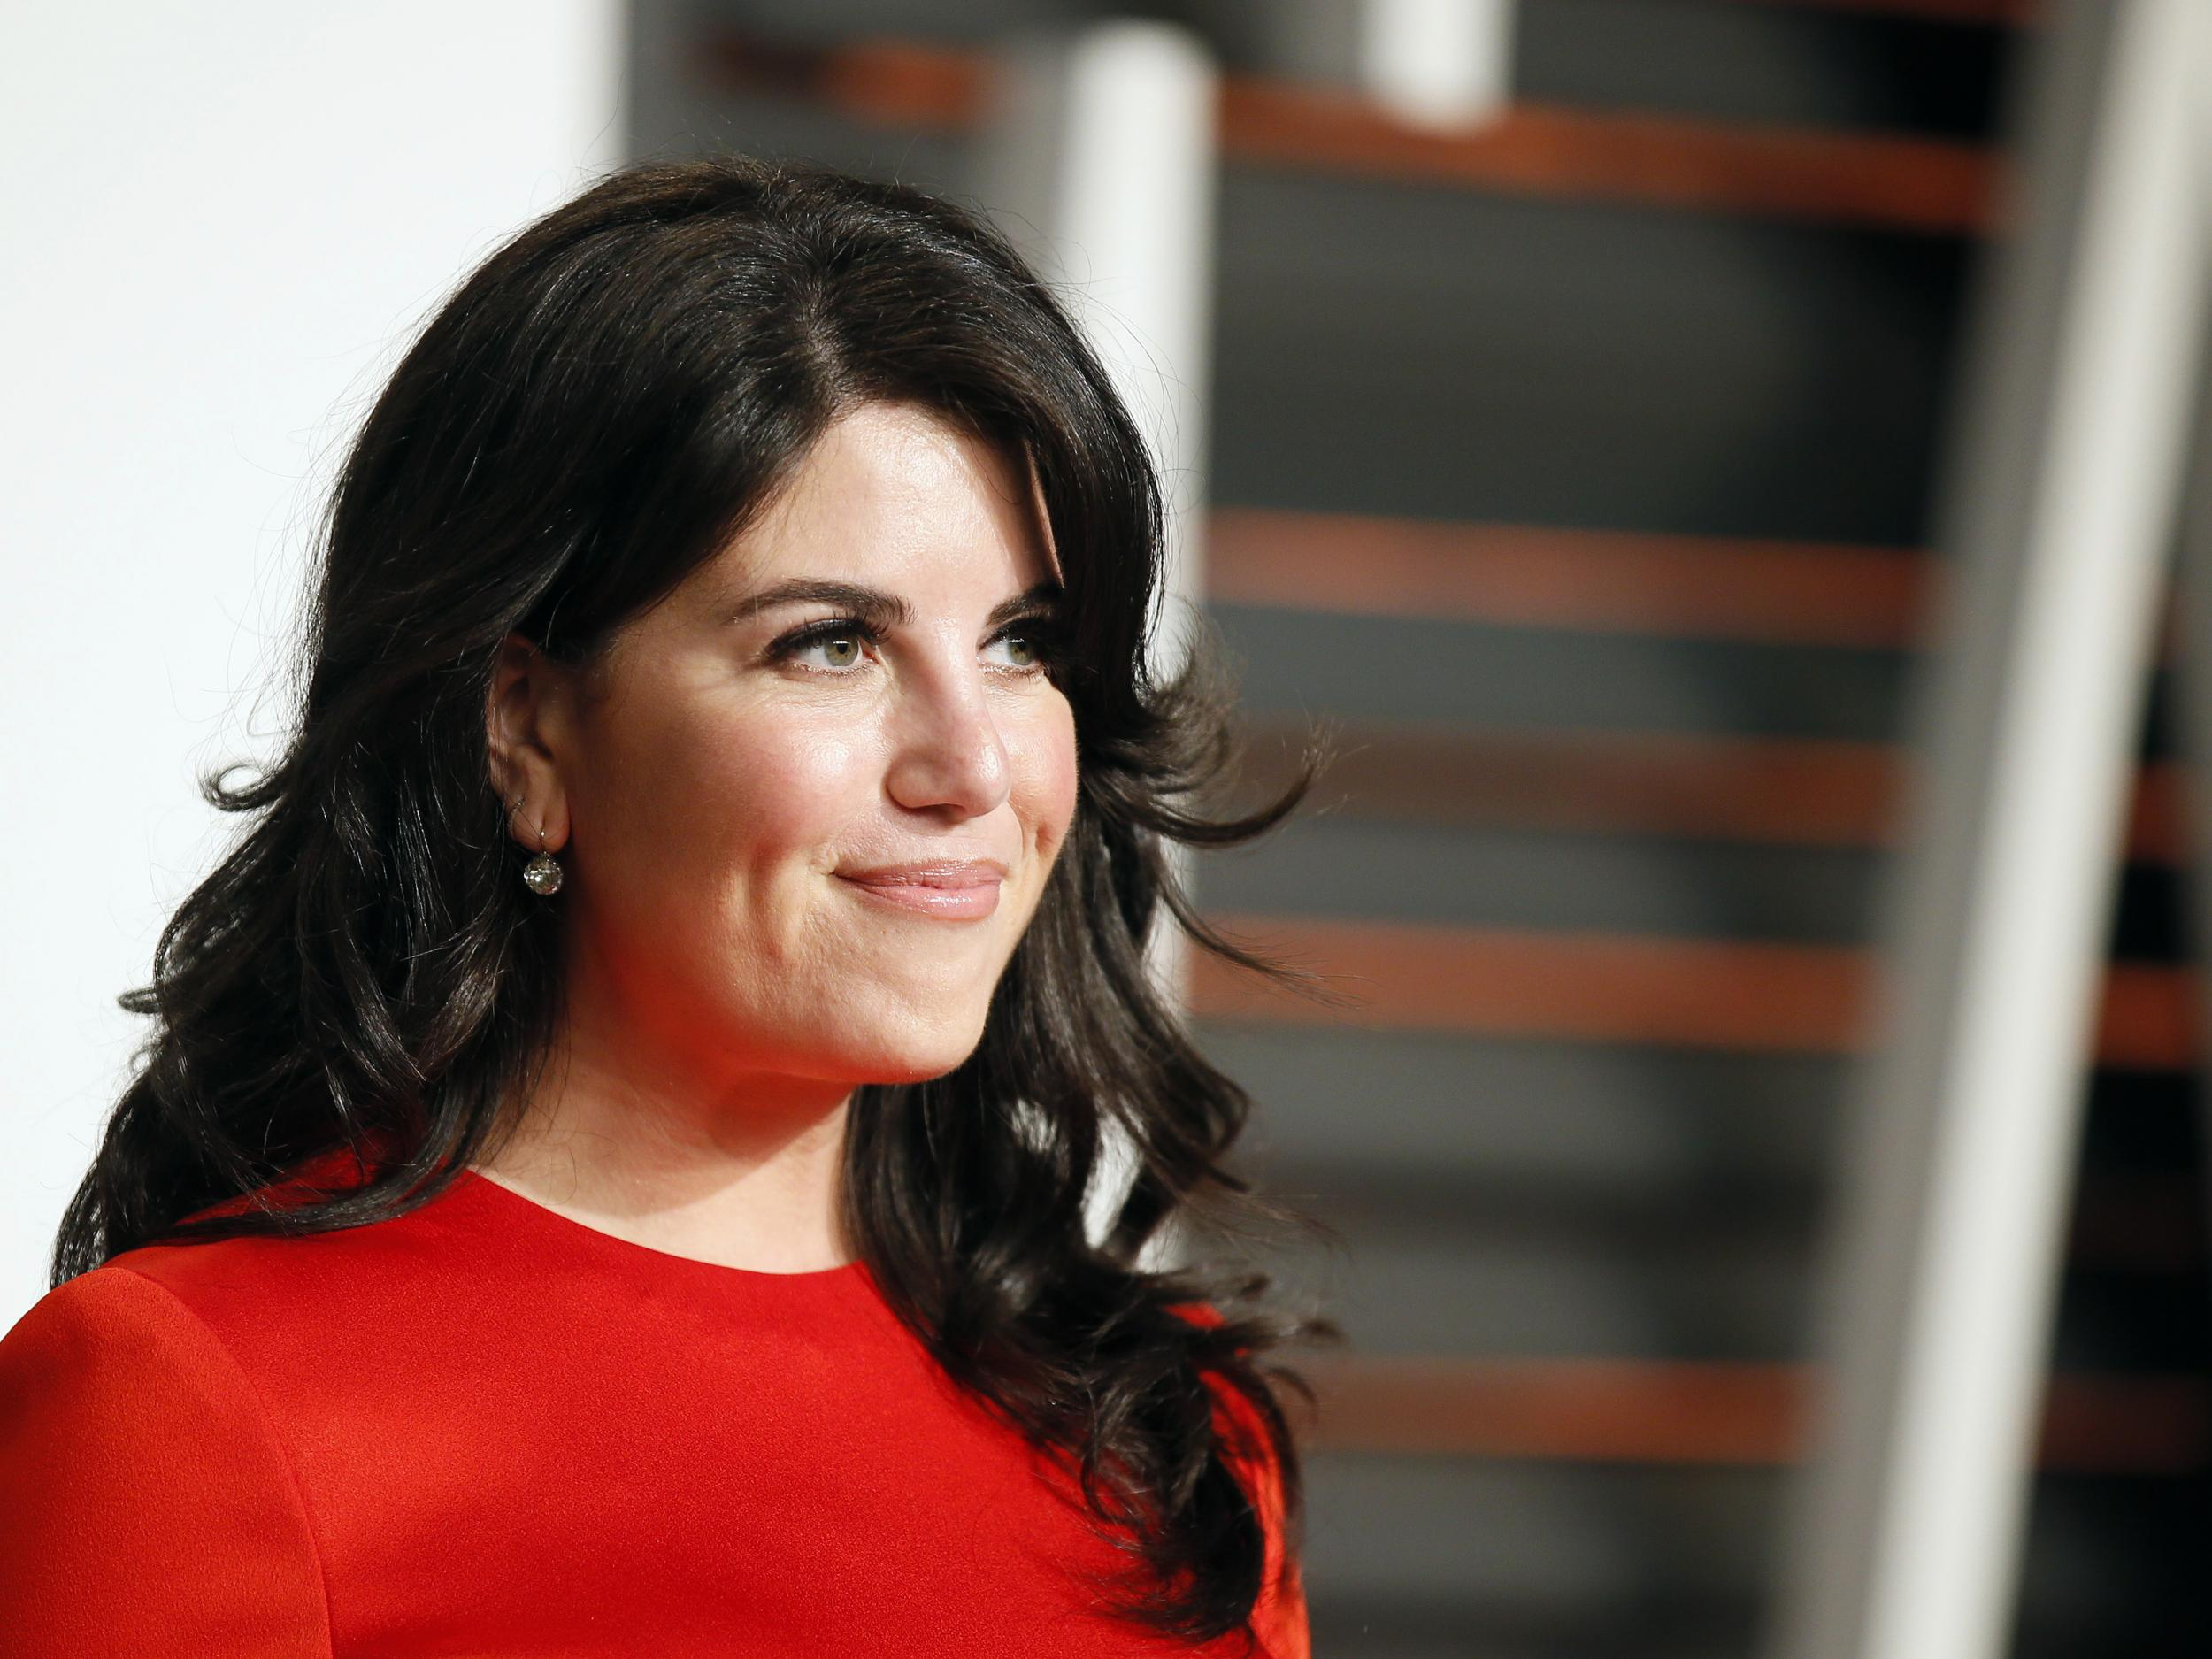 Monica Lewinsky storms off stage after being asked 'off-limits' Bill Clinton question